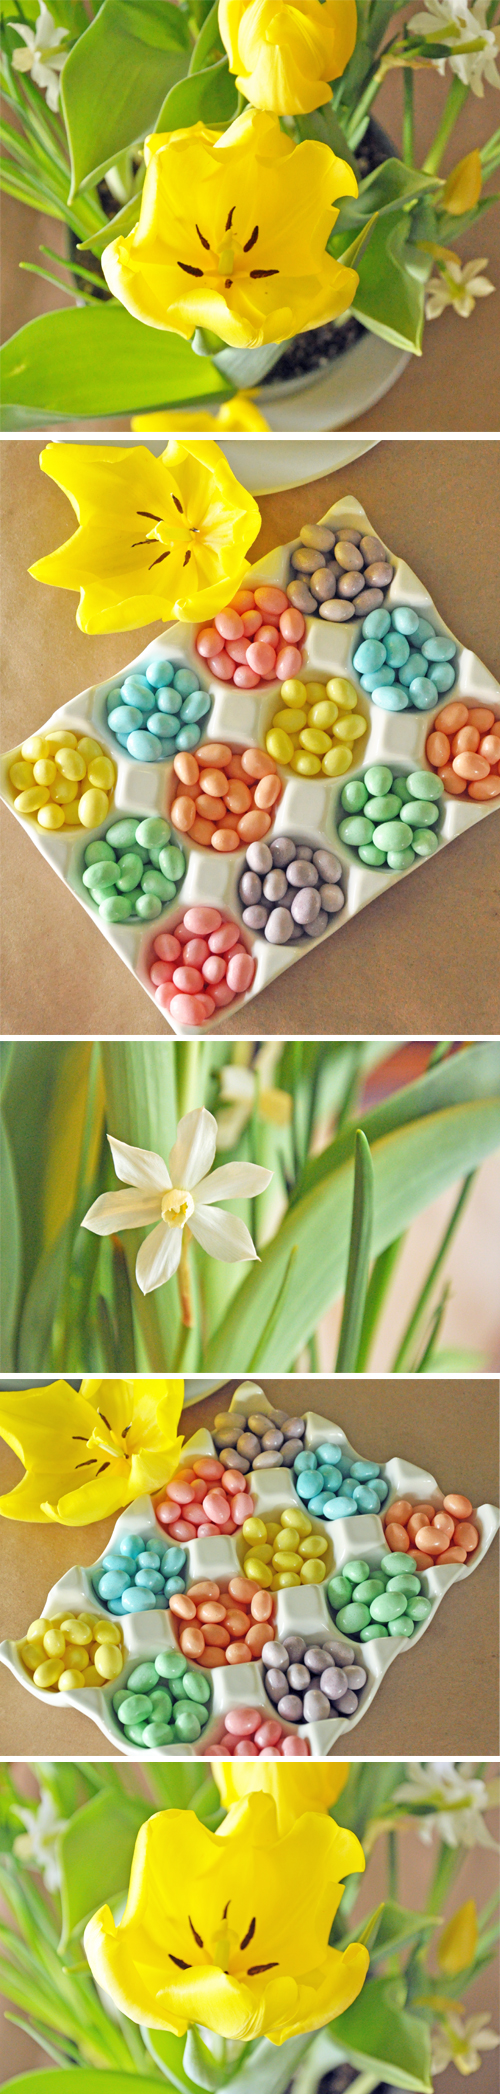 Spring-Blooms-and-Jellybean